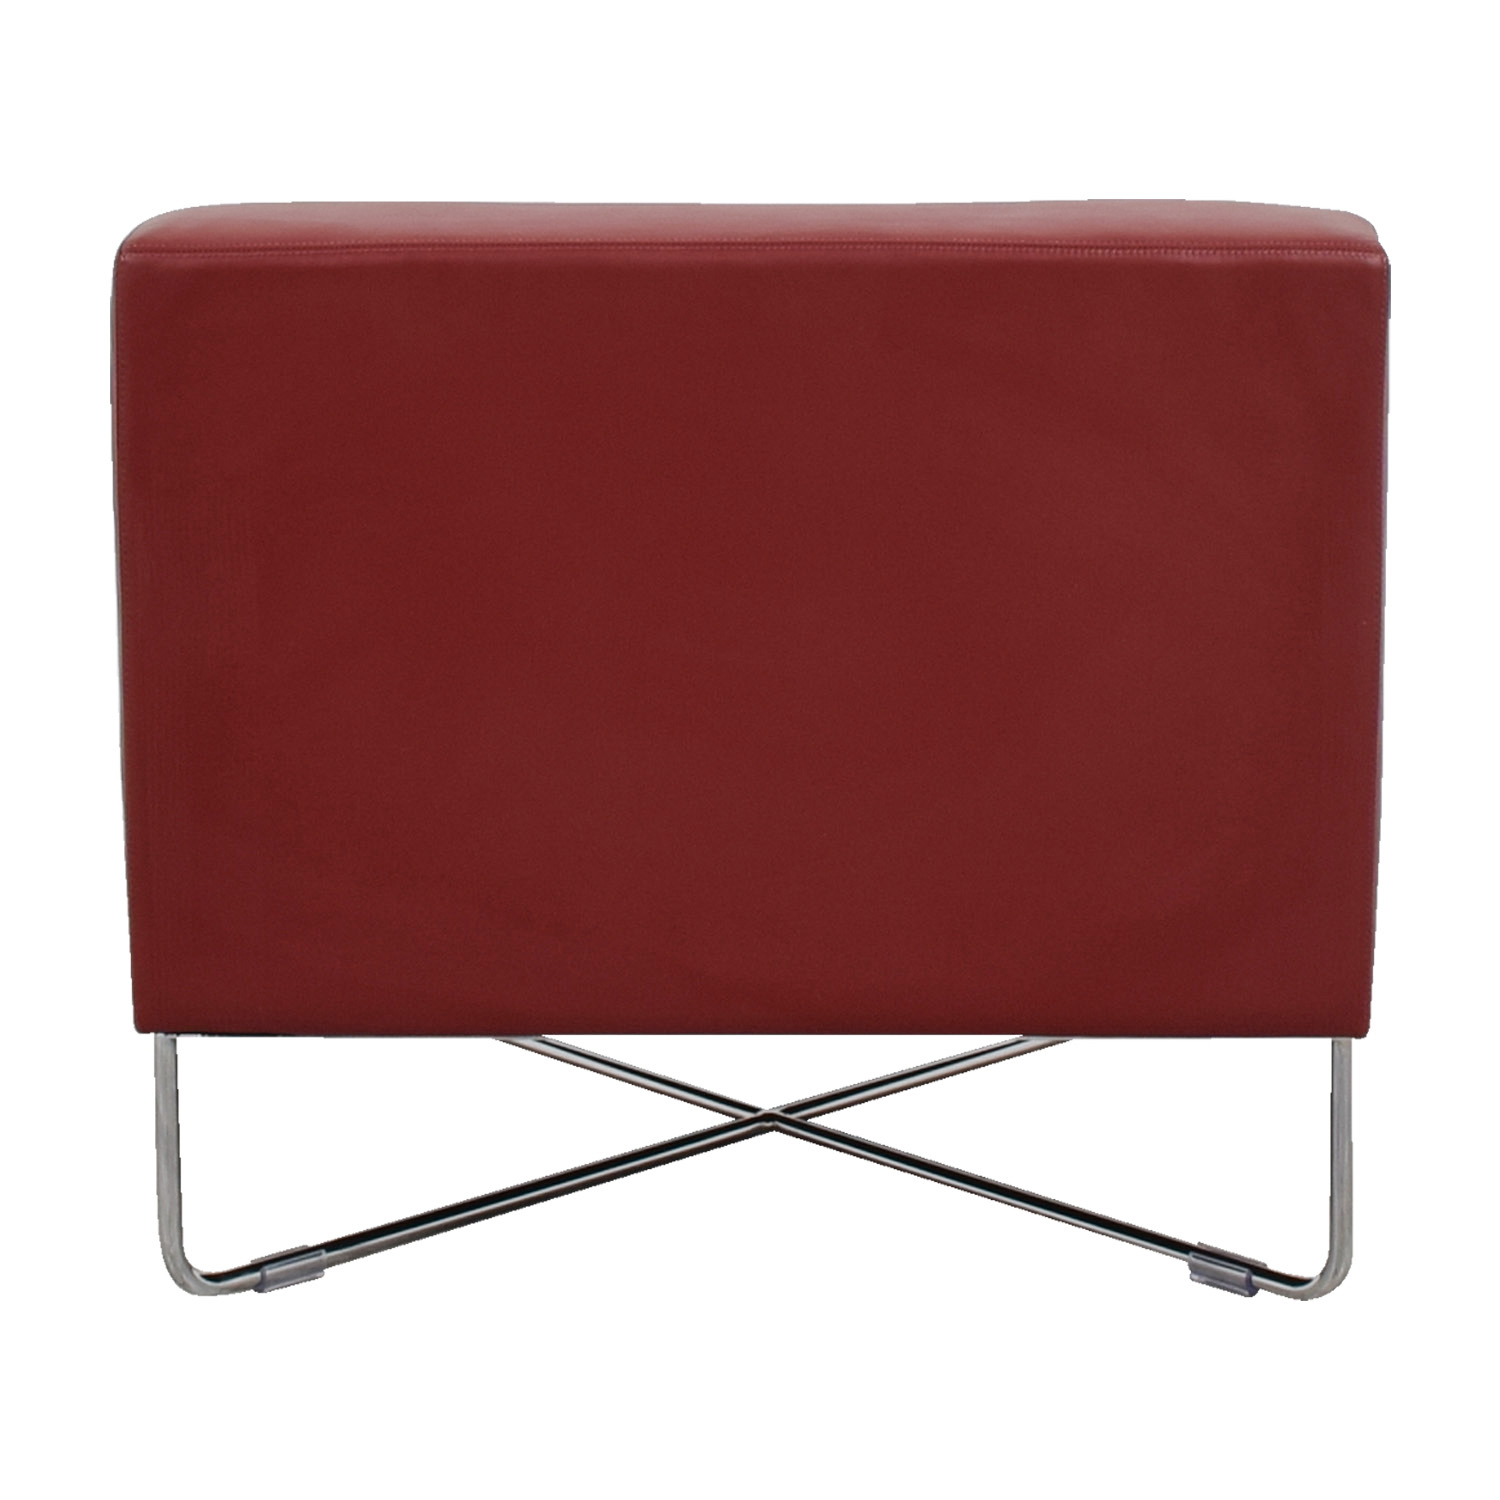 Buy excellent condition Used furniture on sale : bernhardt balance red lounge chair used from furnishare.com size 1500 x 1500 jpeg 207kB